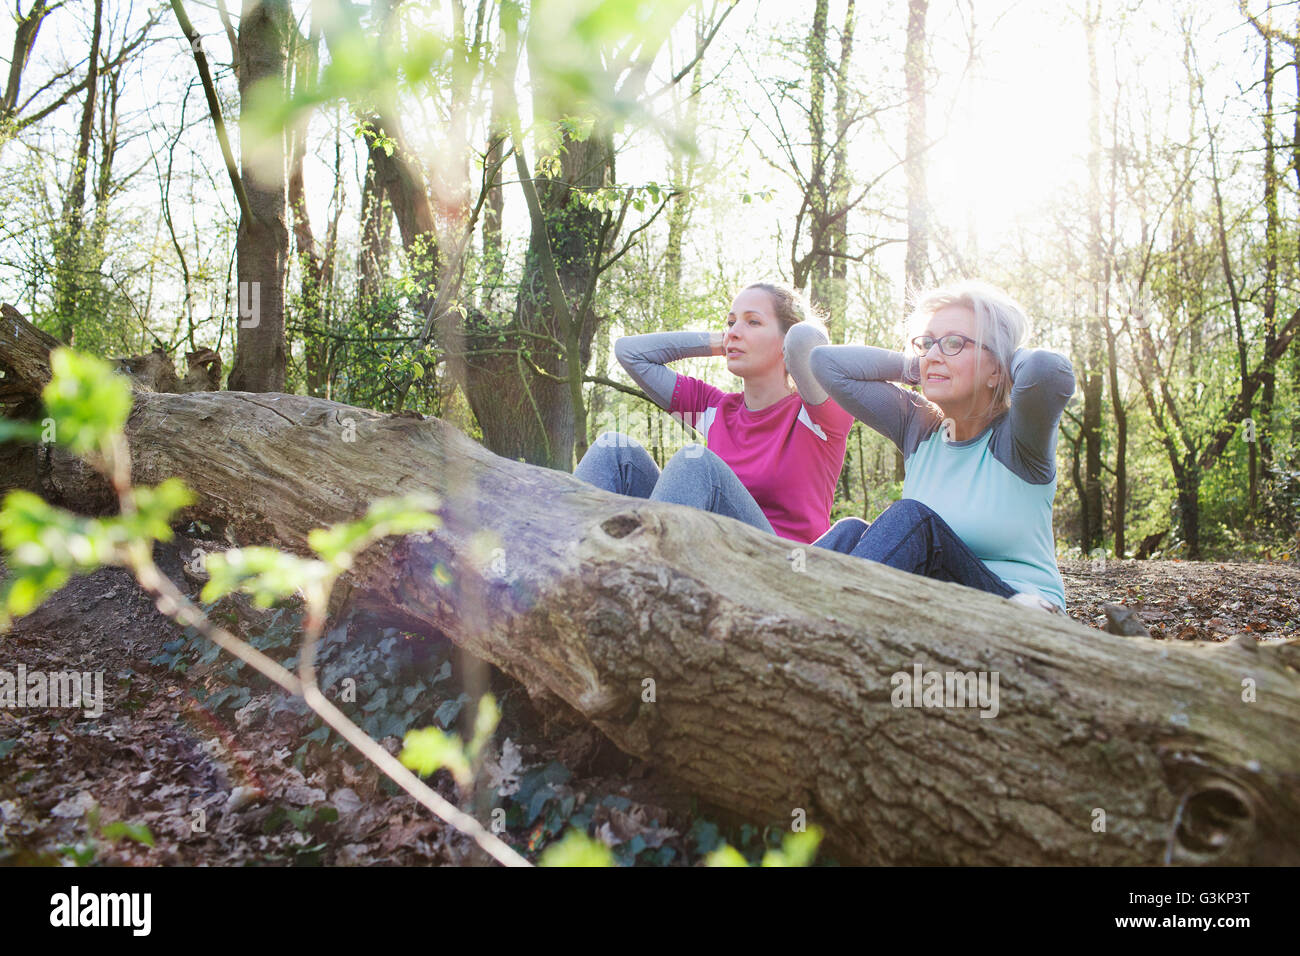 Women in forest hands behind head doing sit up against fallen tree - Stock Image